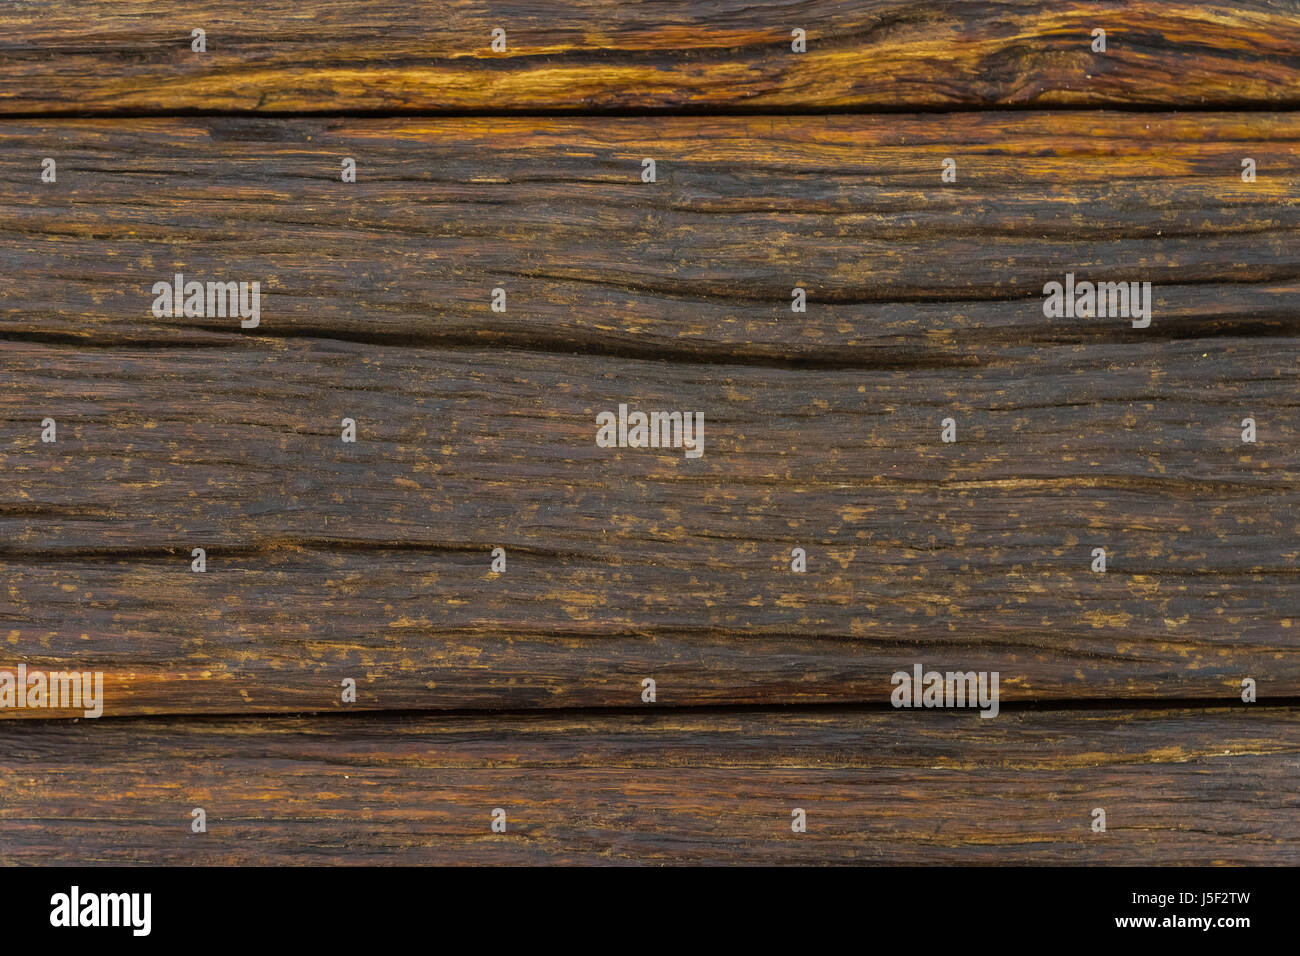 Old vintage white natural wood or wooden texture background or - Grungy Vintage Wooden Texture With Cracks Shabby Timber Pattern Old Natural Wood Decorative Background